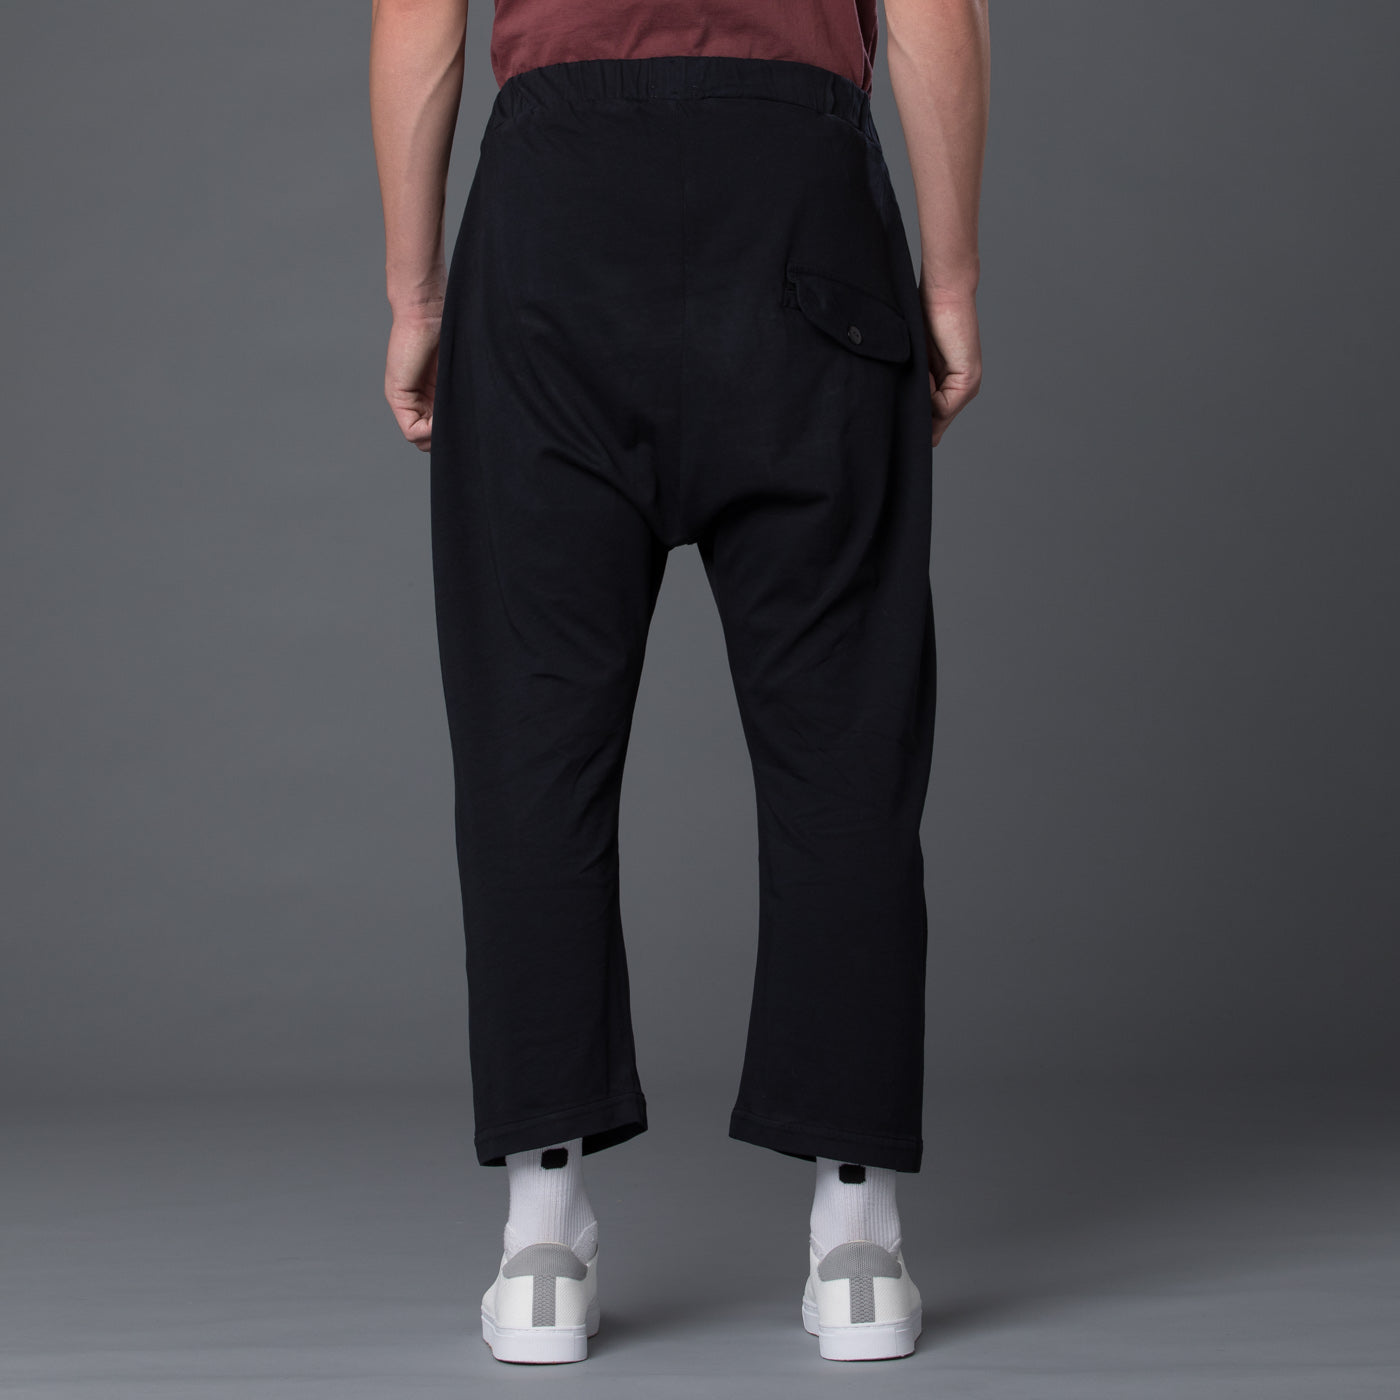 Willy Chavarria Relaxed Fit Pant